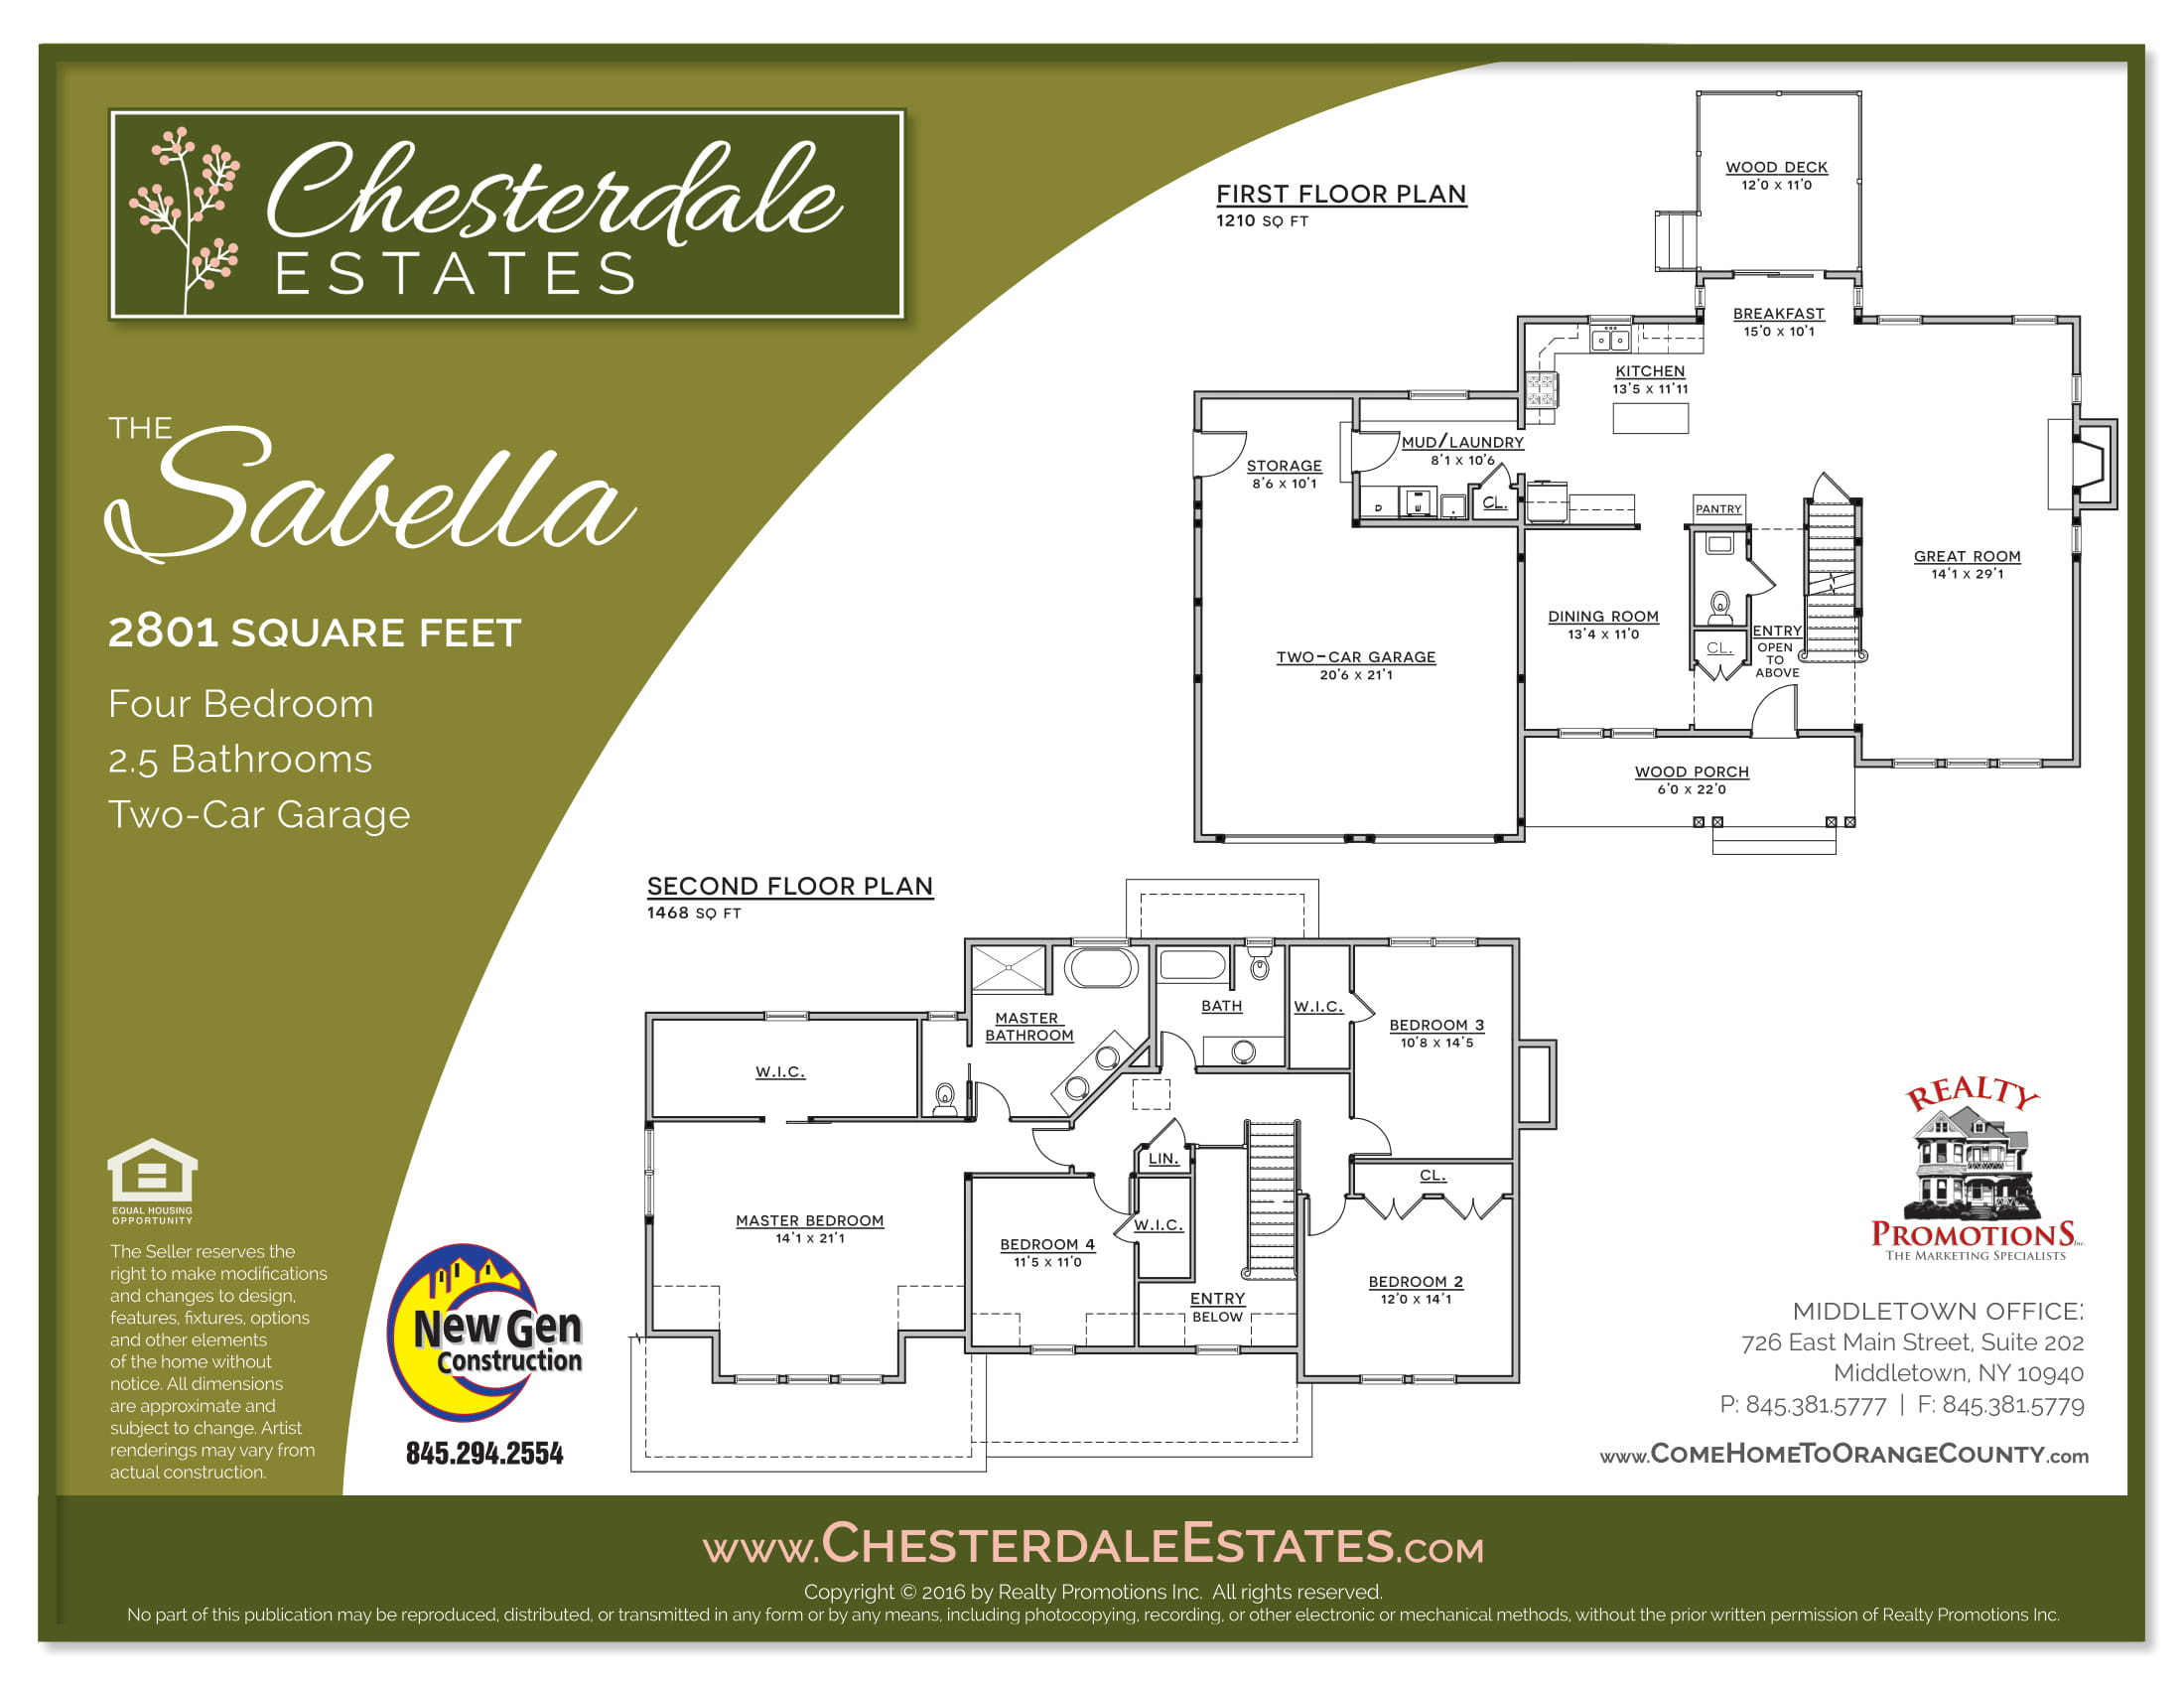 Christopher Ogden Middletown Ny Real Estate Thesabella Chesterdale 2